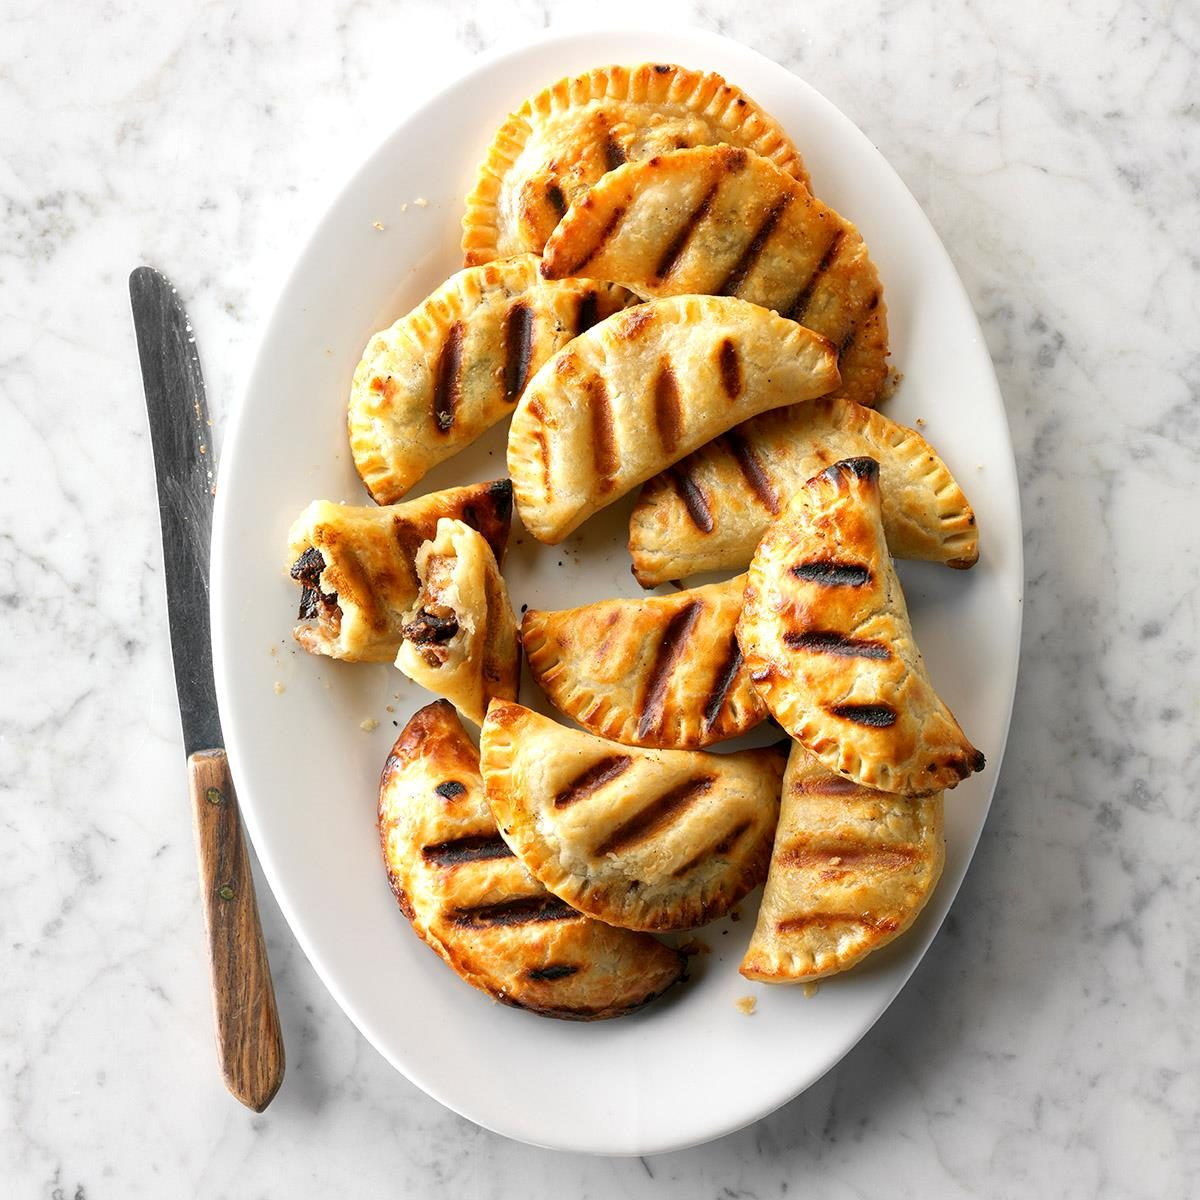 Grilled Figgy Pies